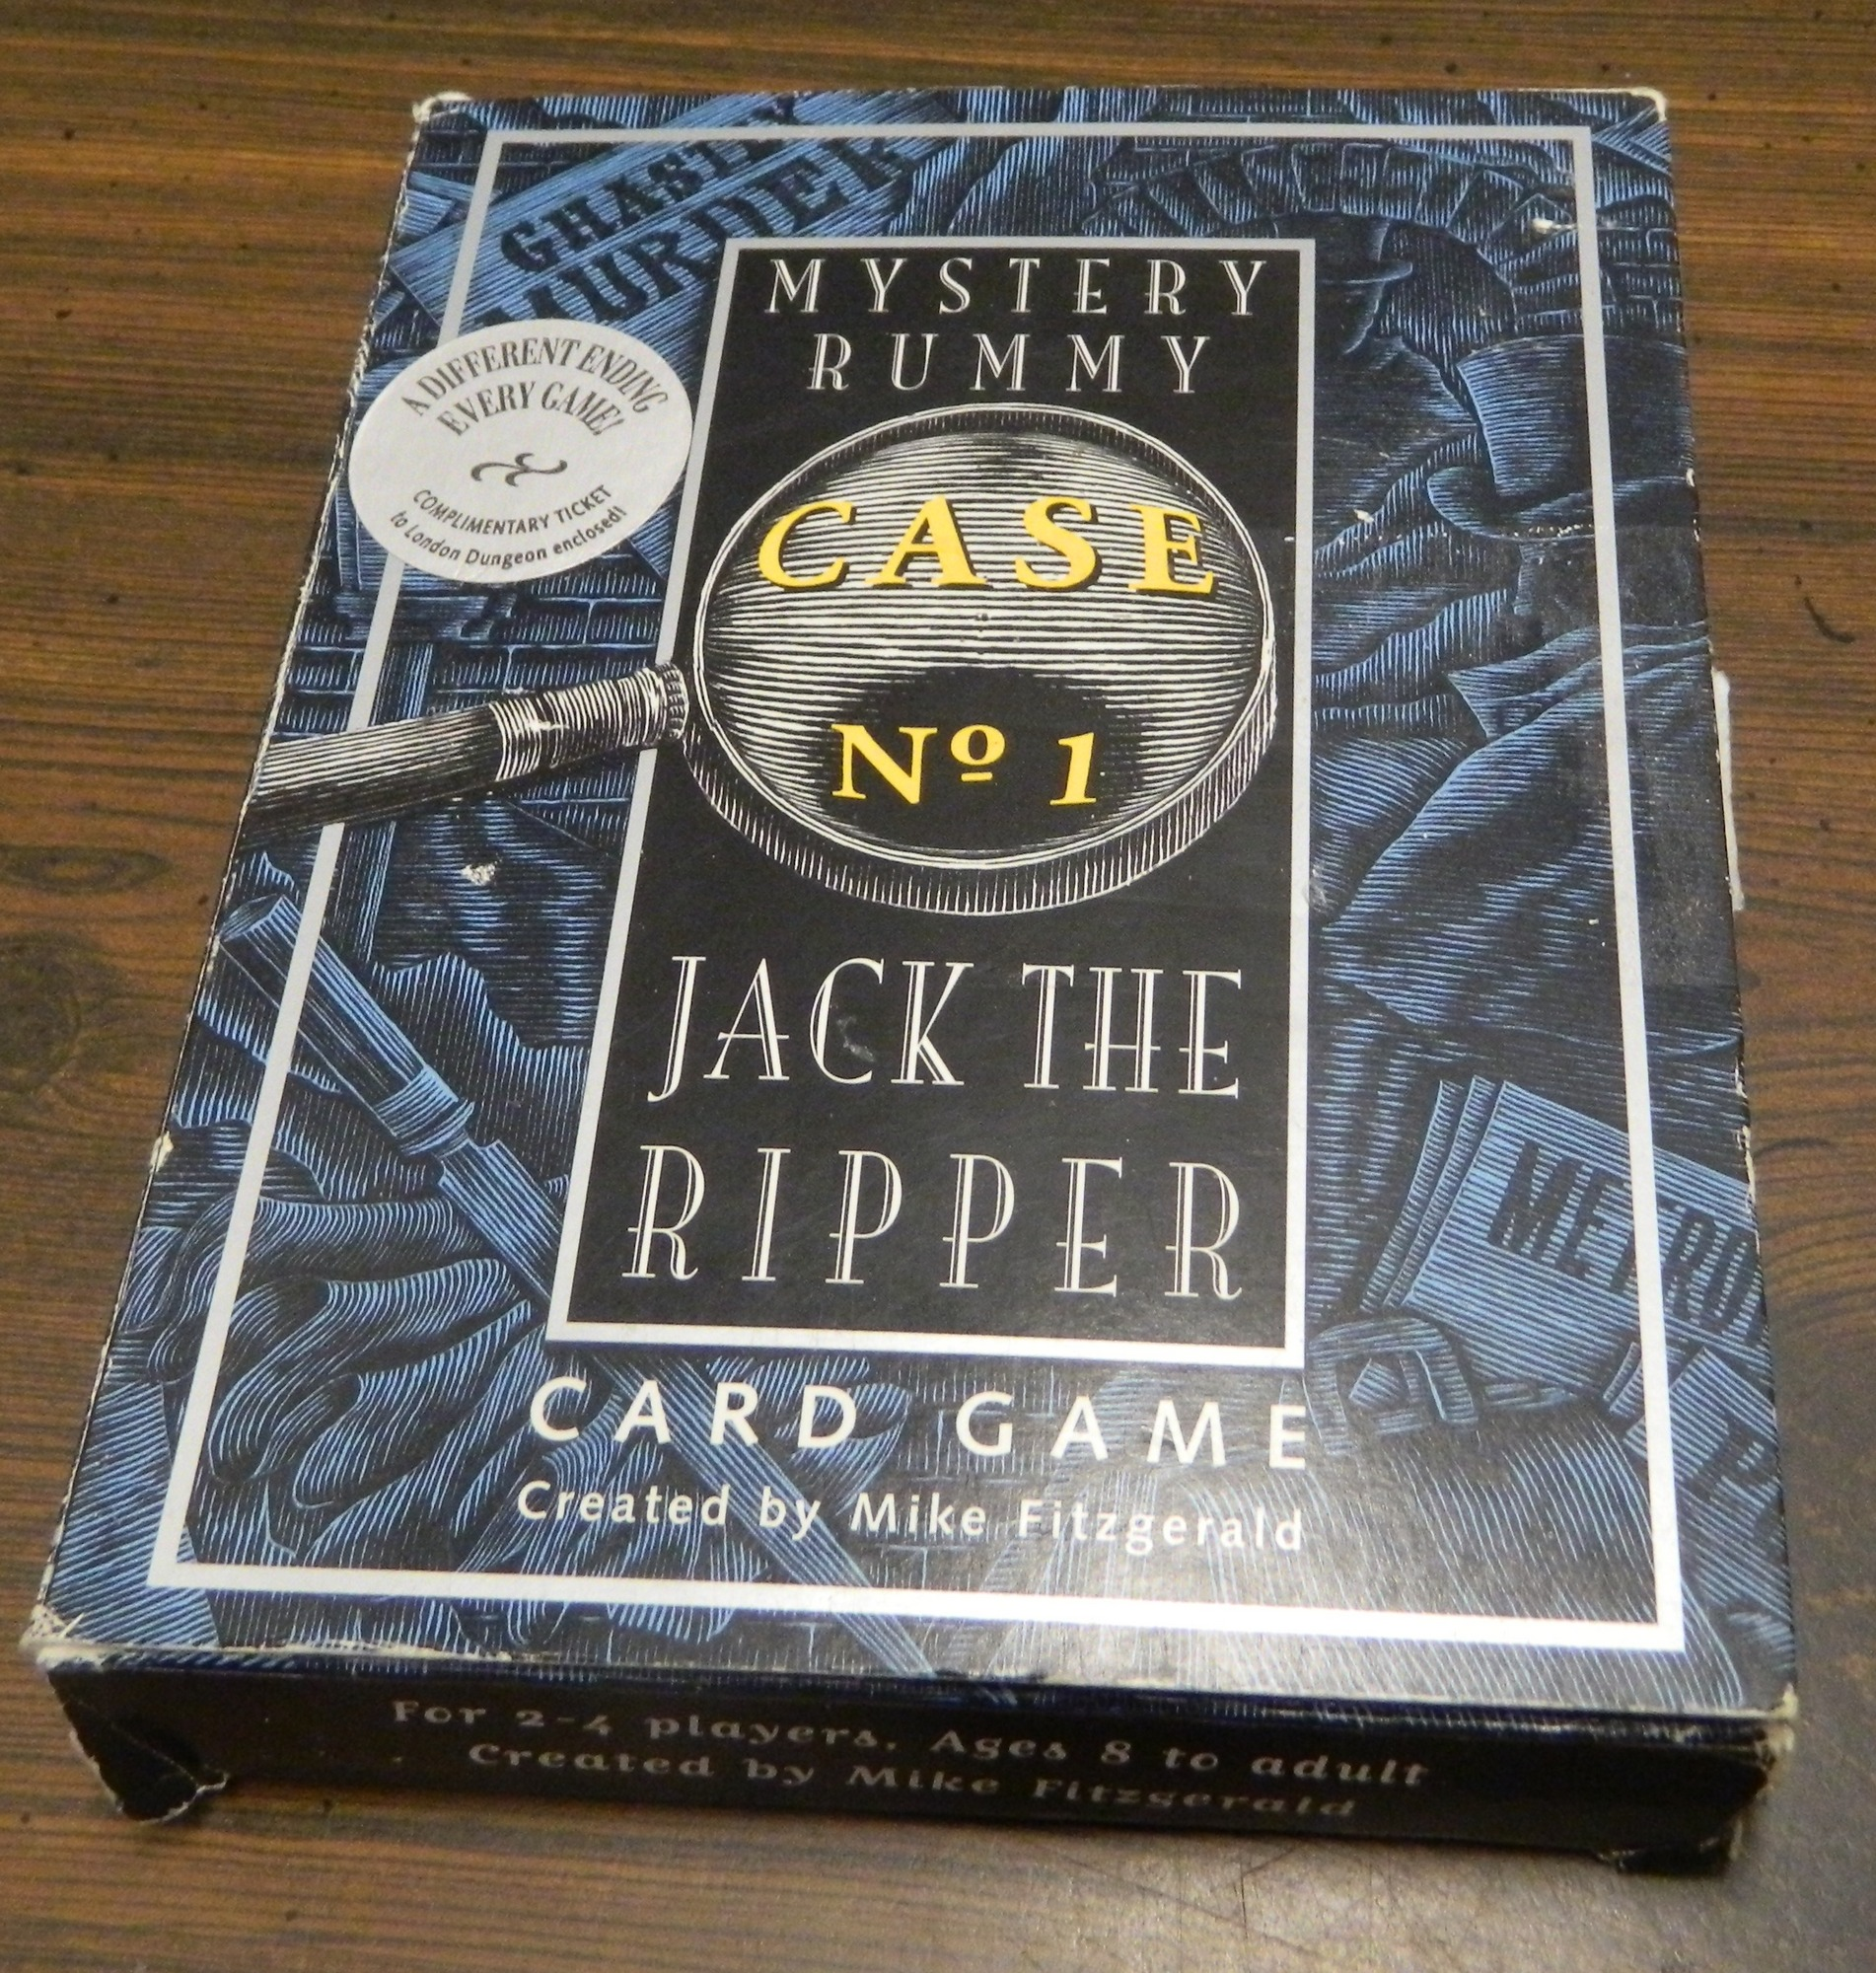 Box for Mystery Rummy Jack the Ripper